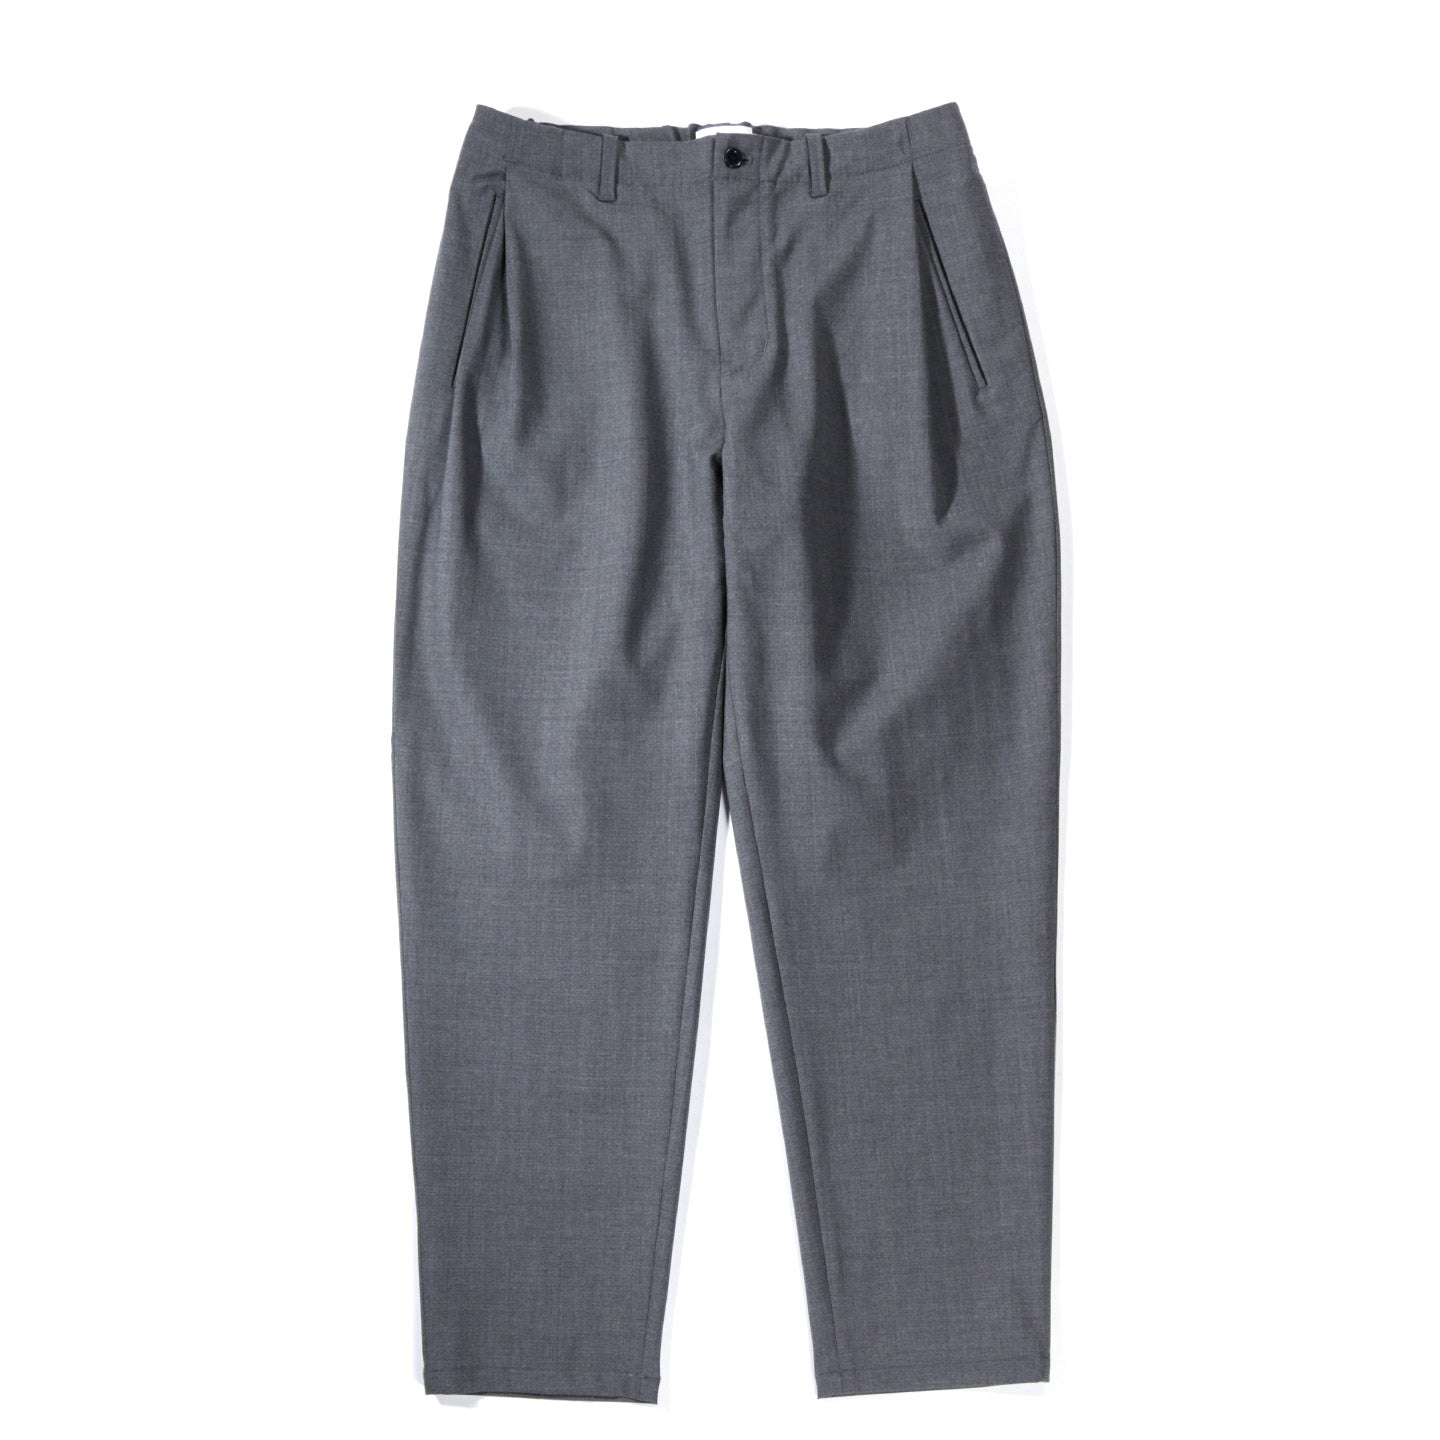 STILL BY HAND DEEP TUCK WOOL PANTS GREY